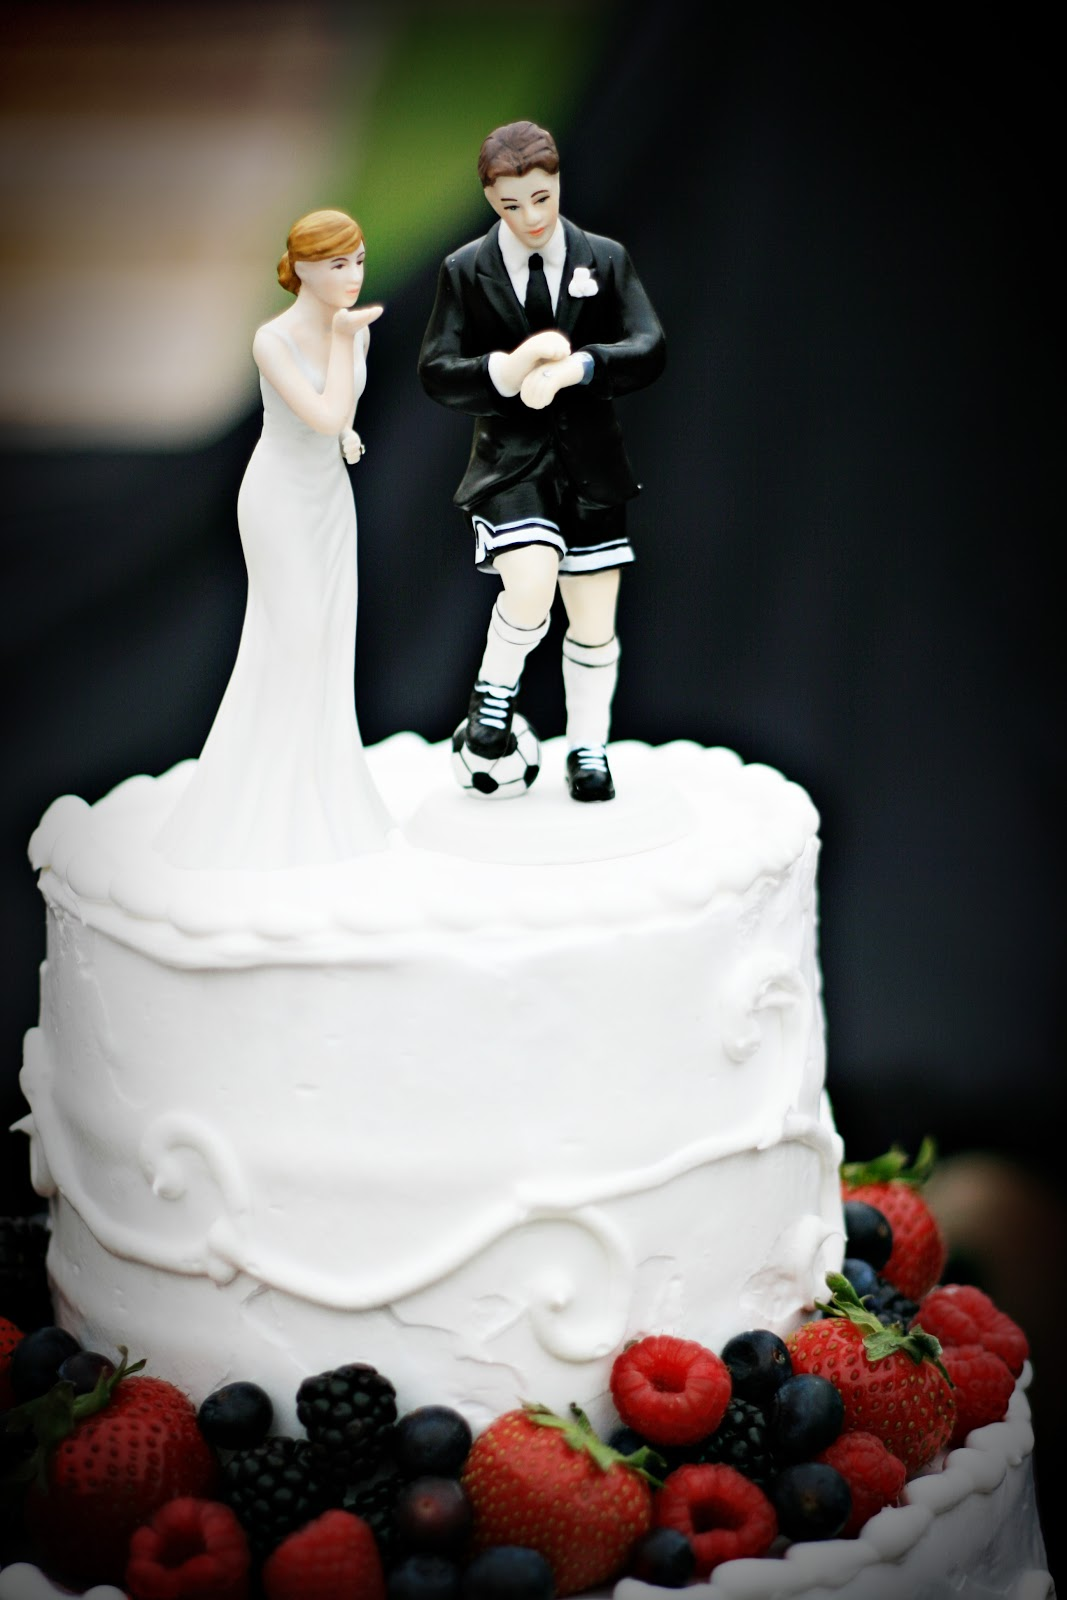 Cakes By Kim: A Soccer Players Wedding